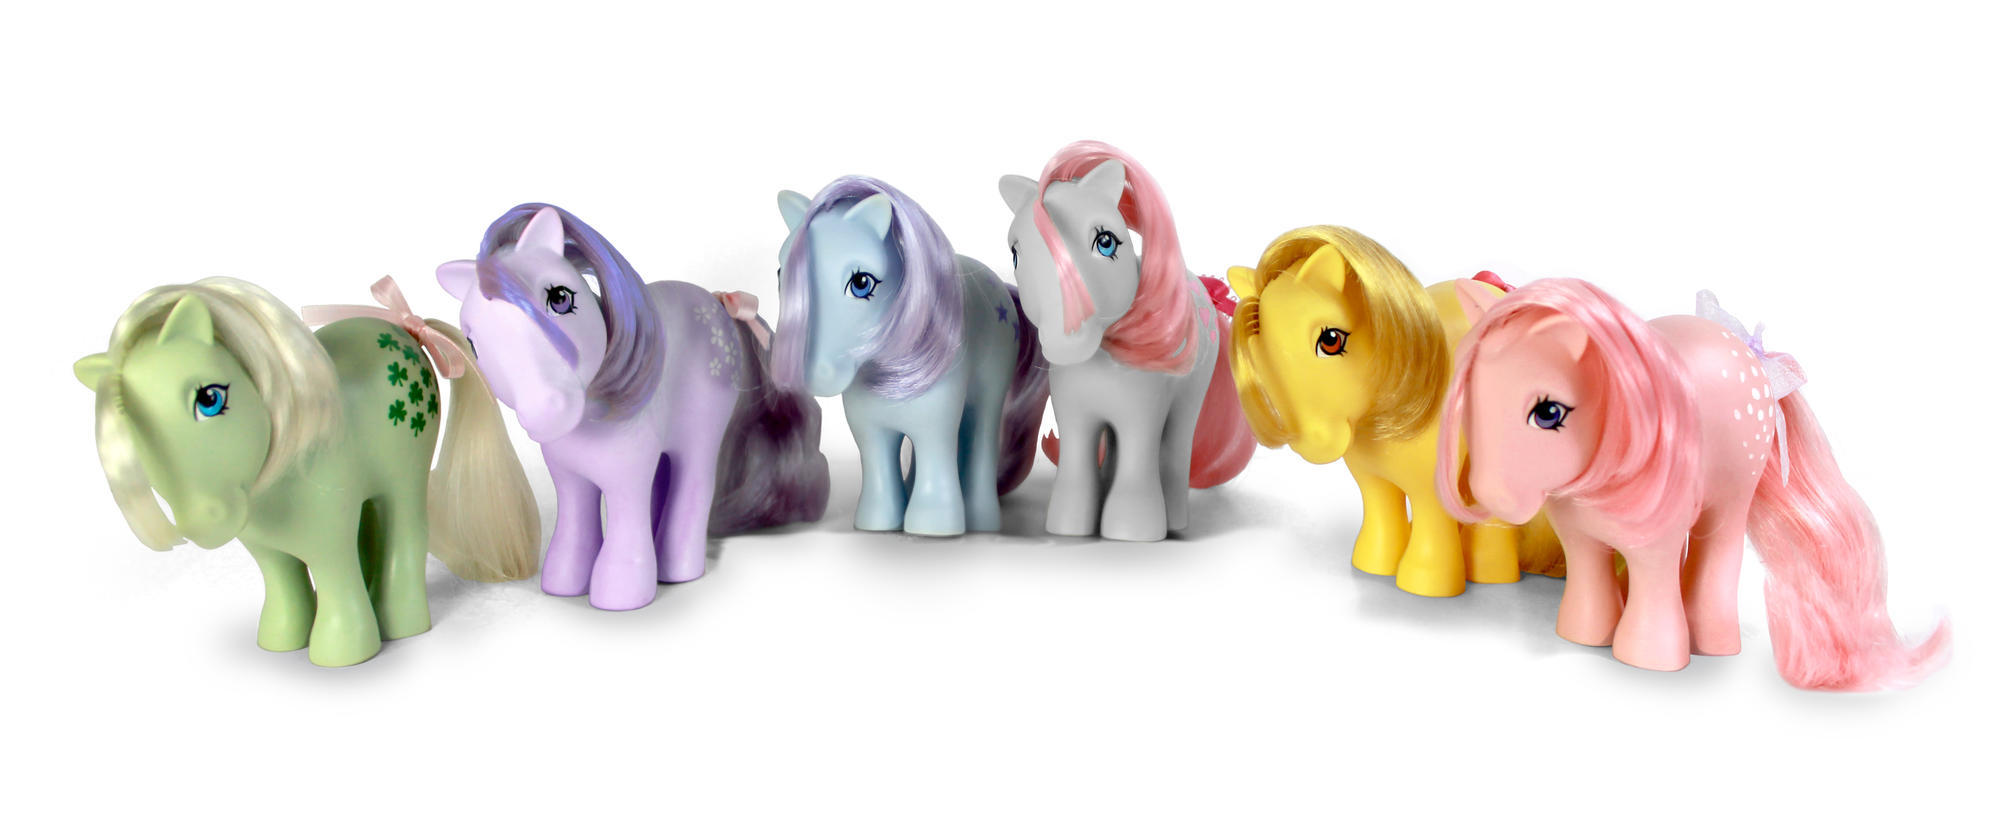 The 6 Original 'My Little Pony' Dolls Are Making a Comeback With a 2018 Makeover